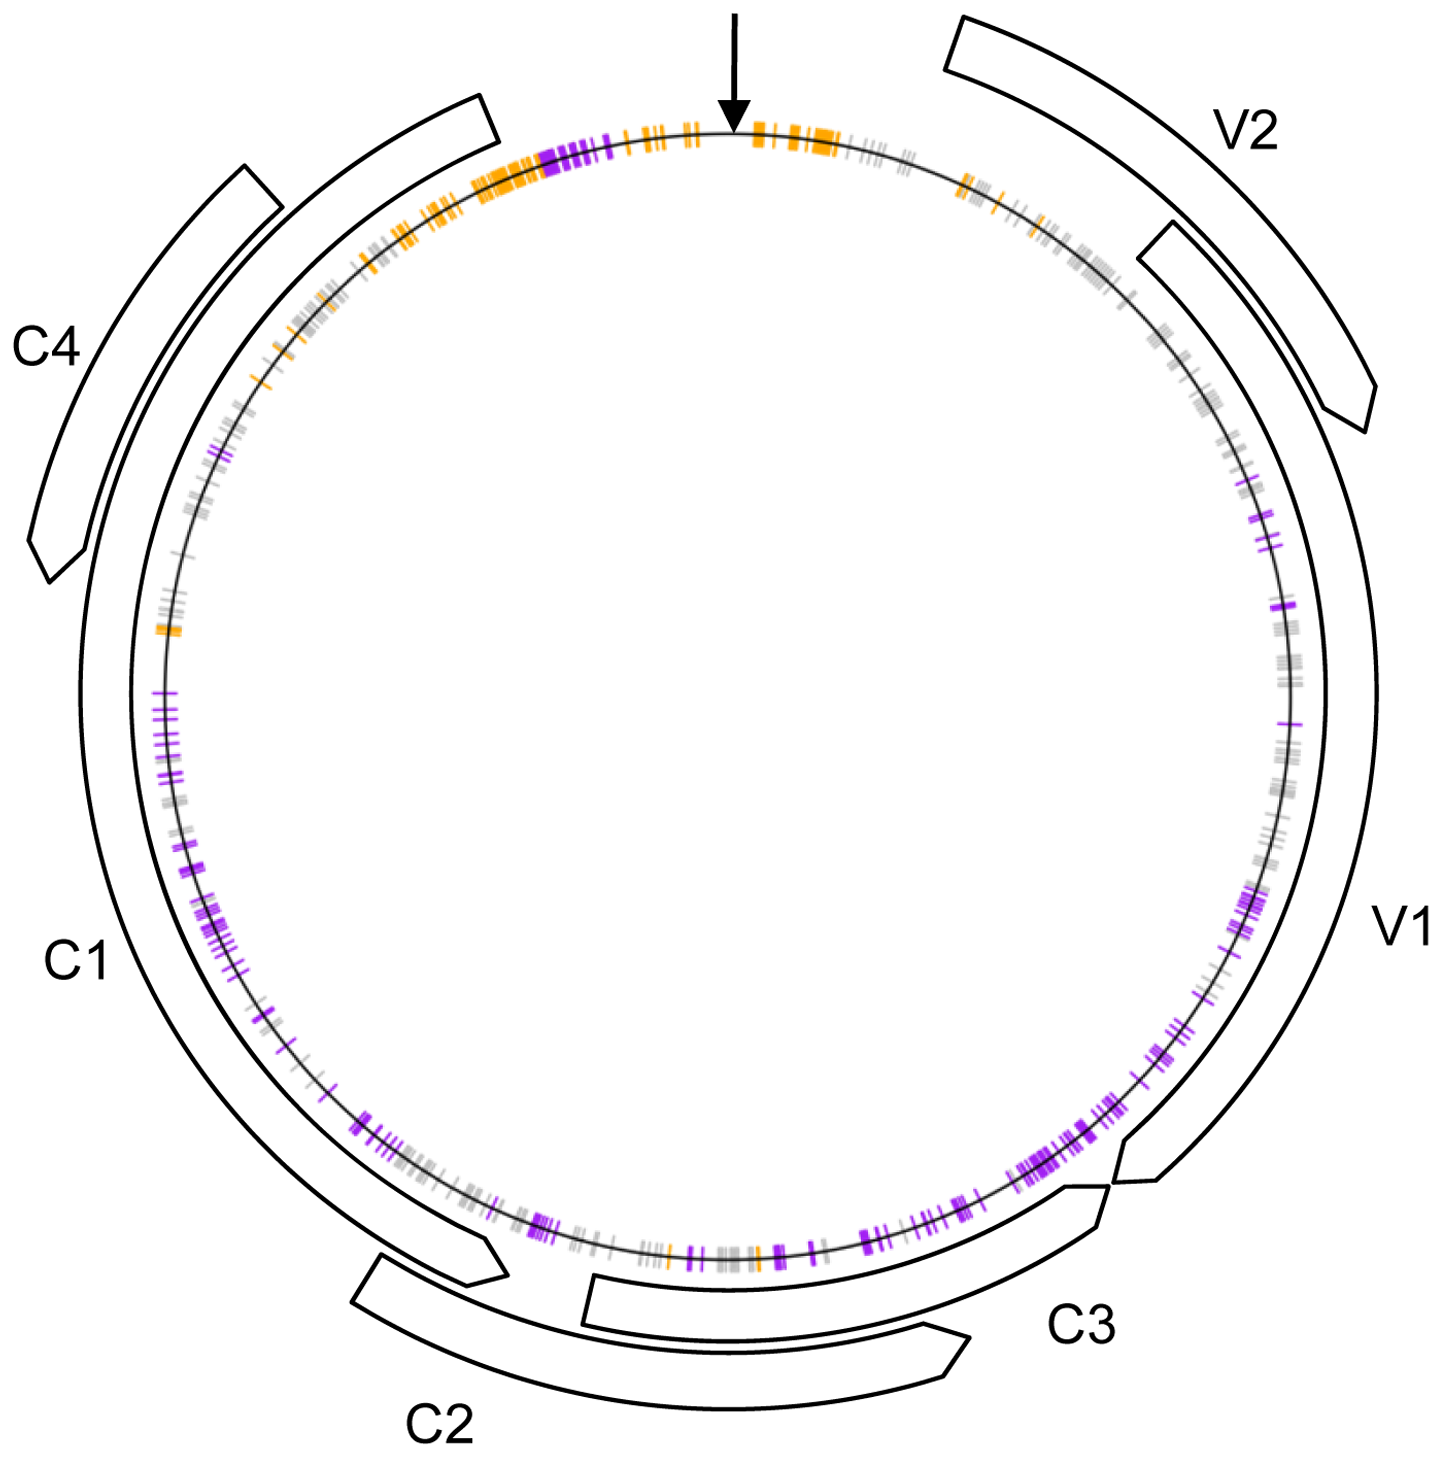 Schematic representation of the recombinant genomes indicating nucleotide positions at which more than expected <i>Tomato yellow leaf curl virus</i> (TYX; orange) or <i>Tomato leaf curl Comoros virus</i> (TOX; purple) derived nucleotides are found (<i>p</i>-value&lt;0.001) under the assumption of random recombination.